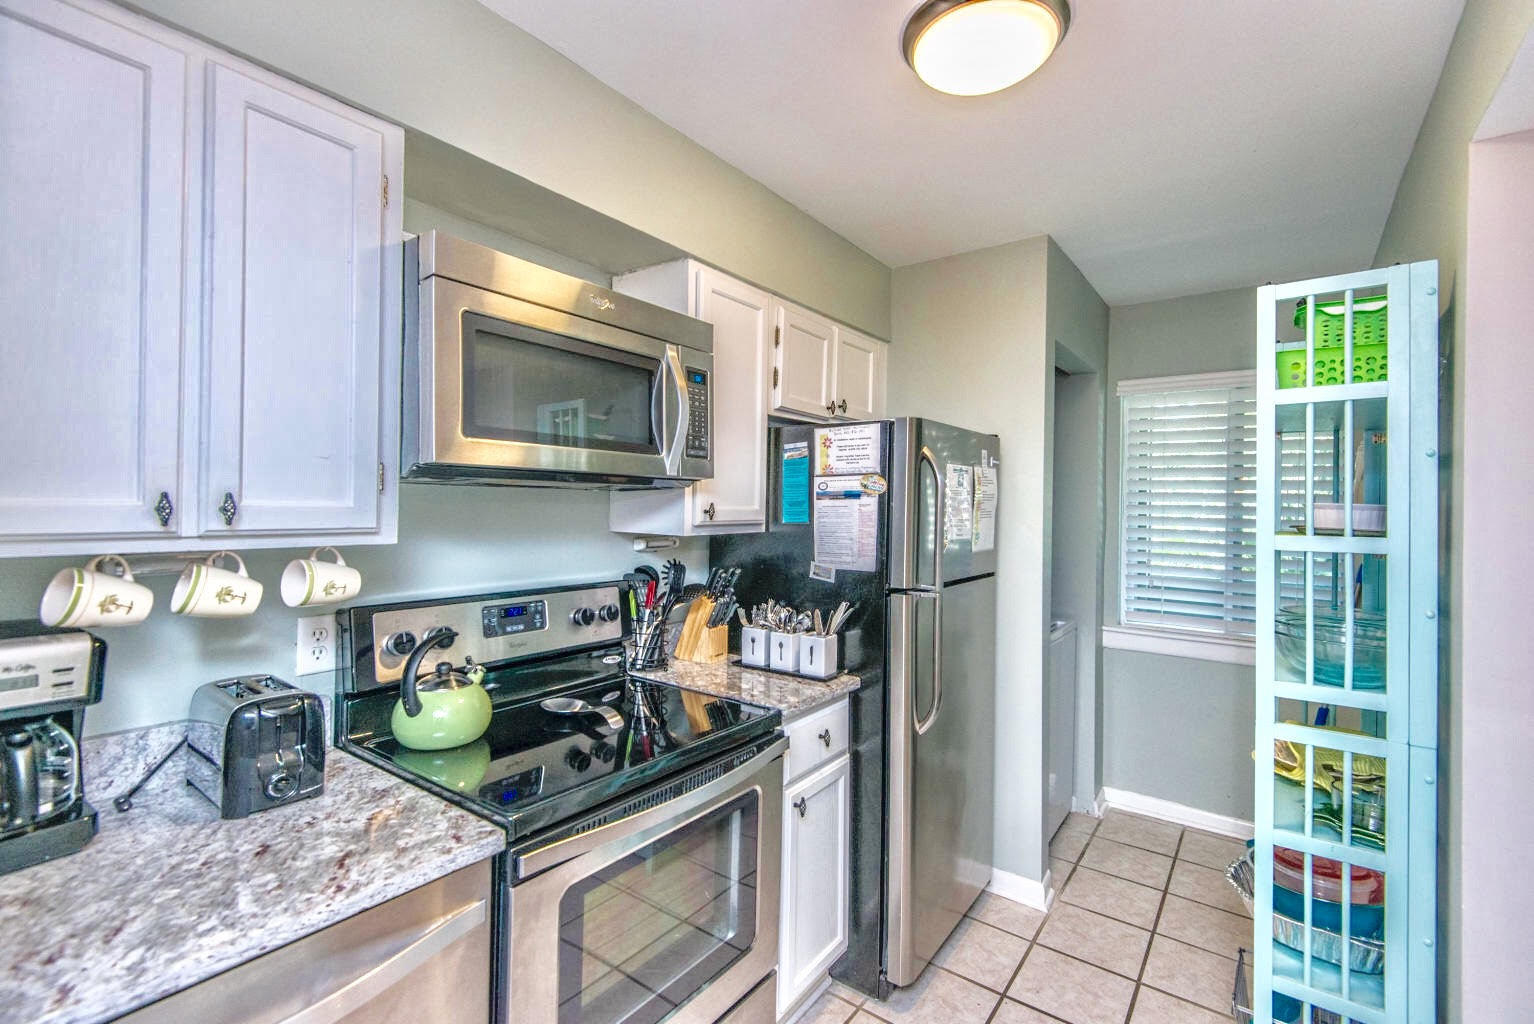 Mariners Cay Homes For Sale - 42 Mariners Cay, Folly Beach, SC - 12